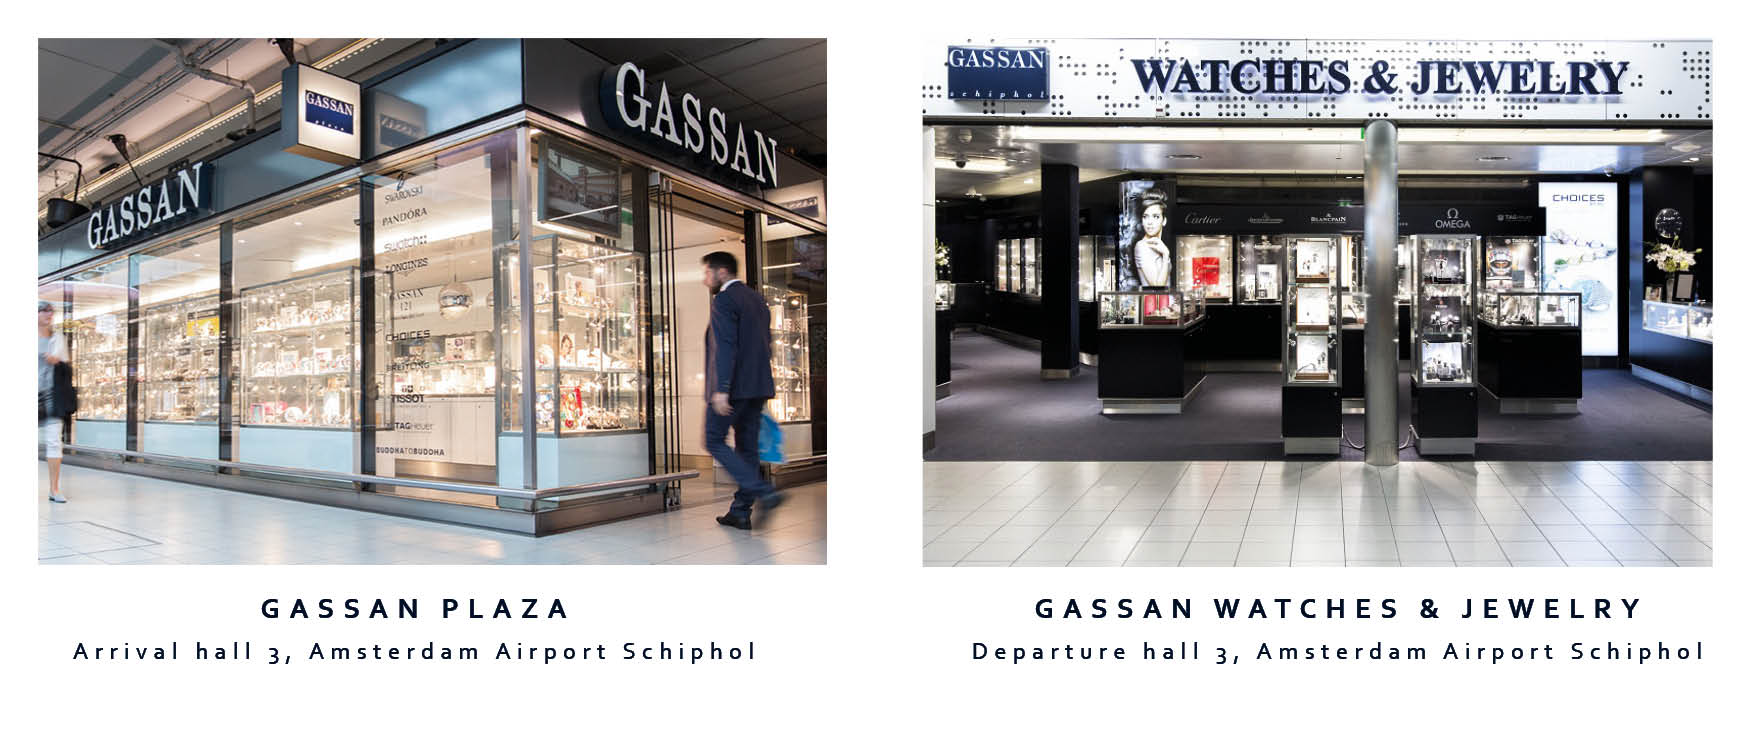 GASSAN Schiphol shops before and after security